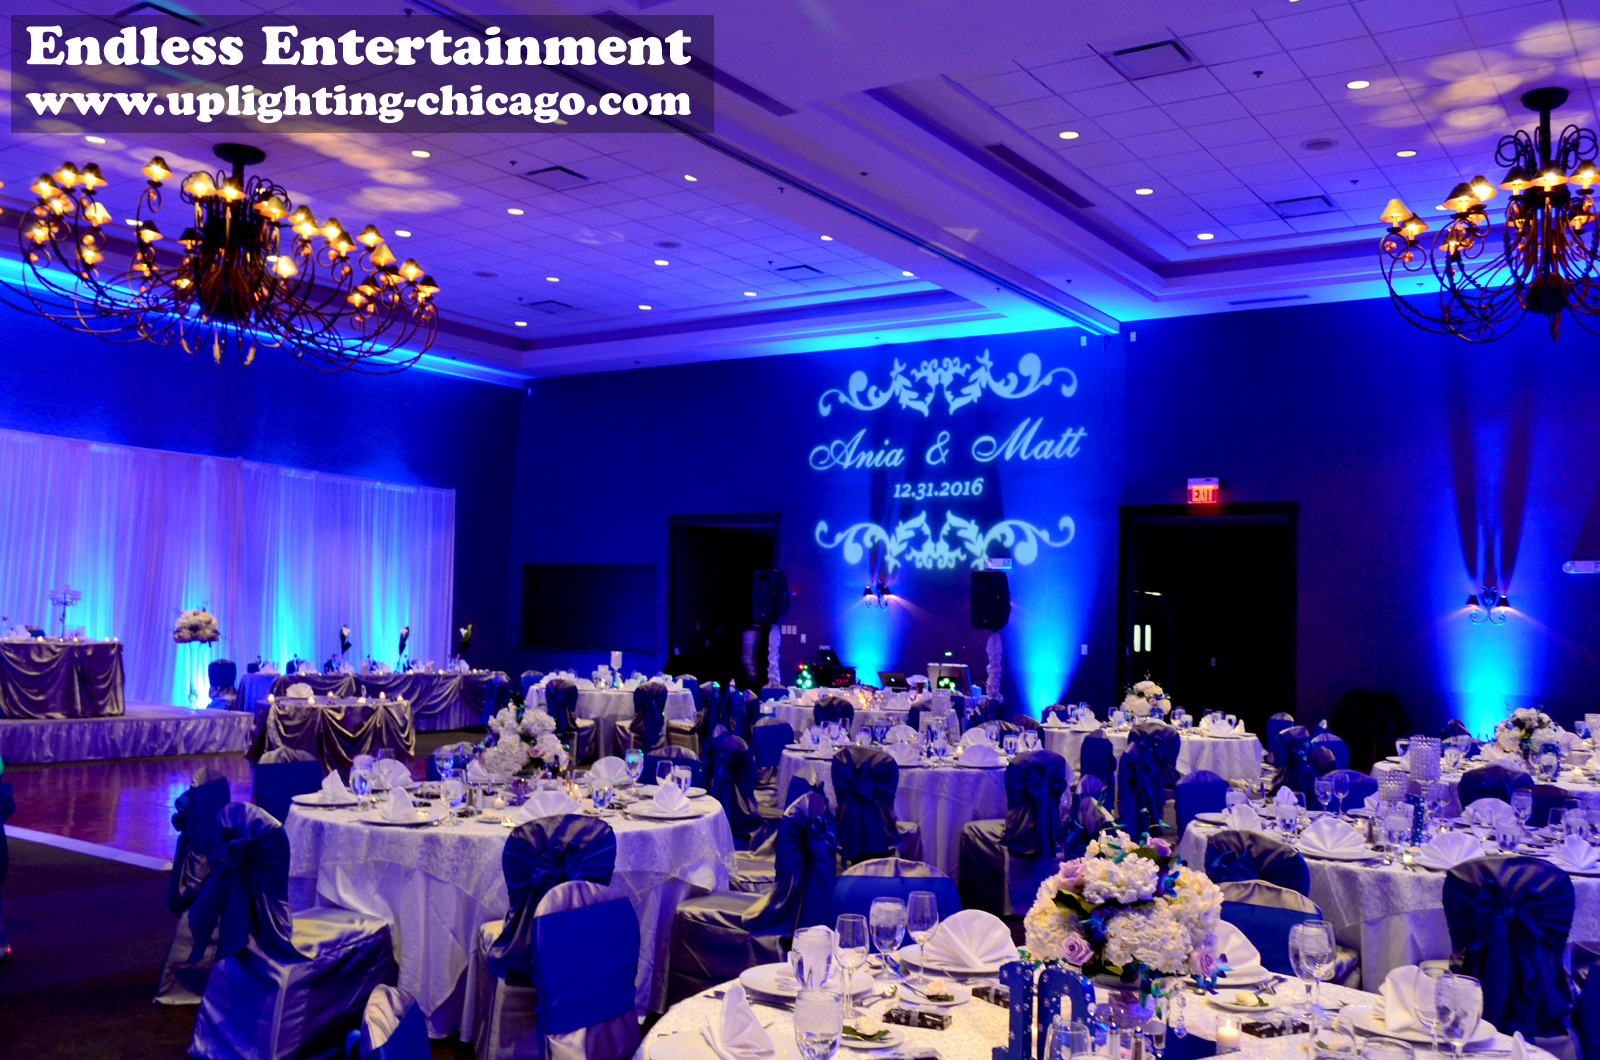 Wedding Stonegate Uplighting by Endless Entertainment Chicago (773)744-3903